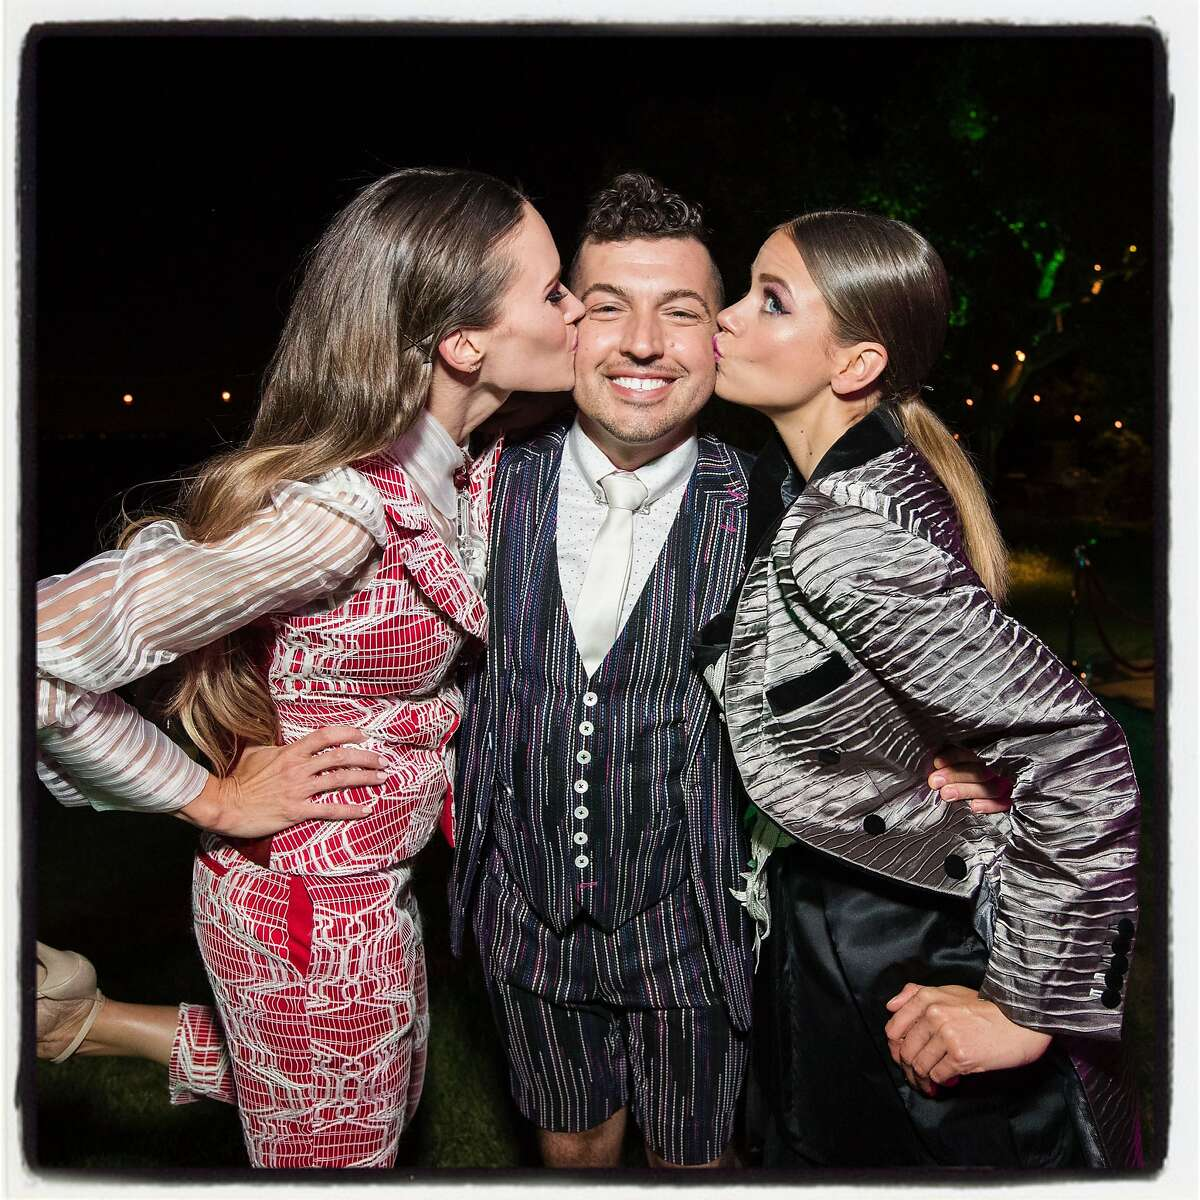 Yulia Riera (left) with fashion designer Jake Wall and Giana Ciapponi at the Hotbed Gala. June 10, 2017.